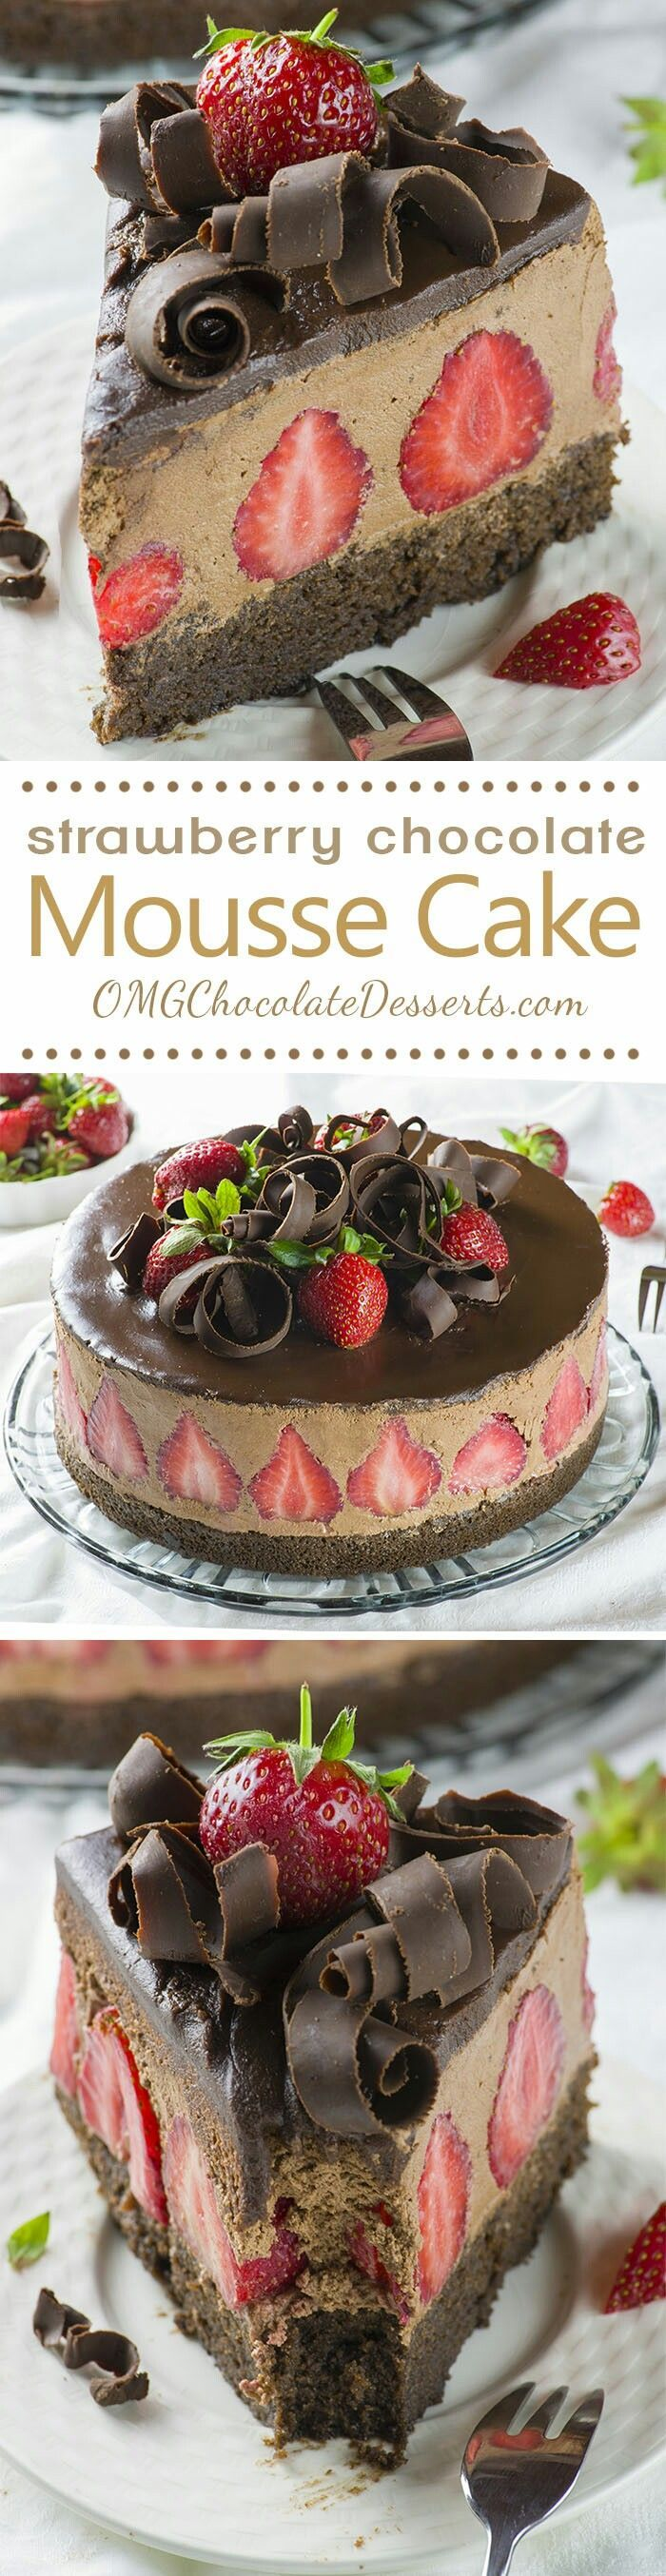 http://omgchocolatedesserts.com/strawberry-chocolate-cake/